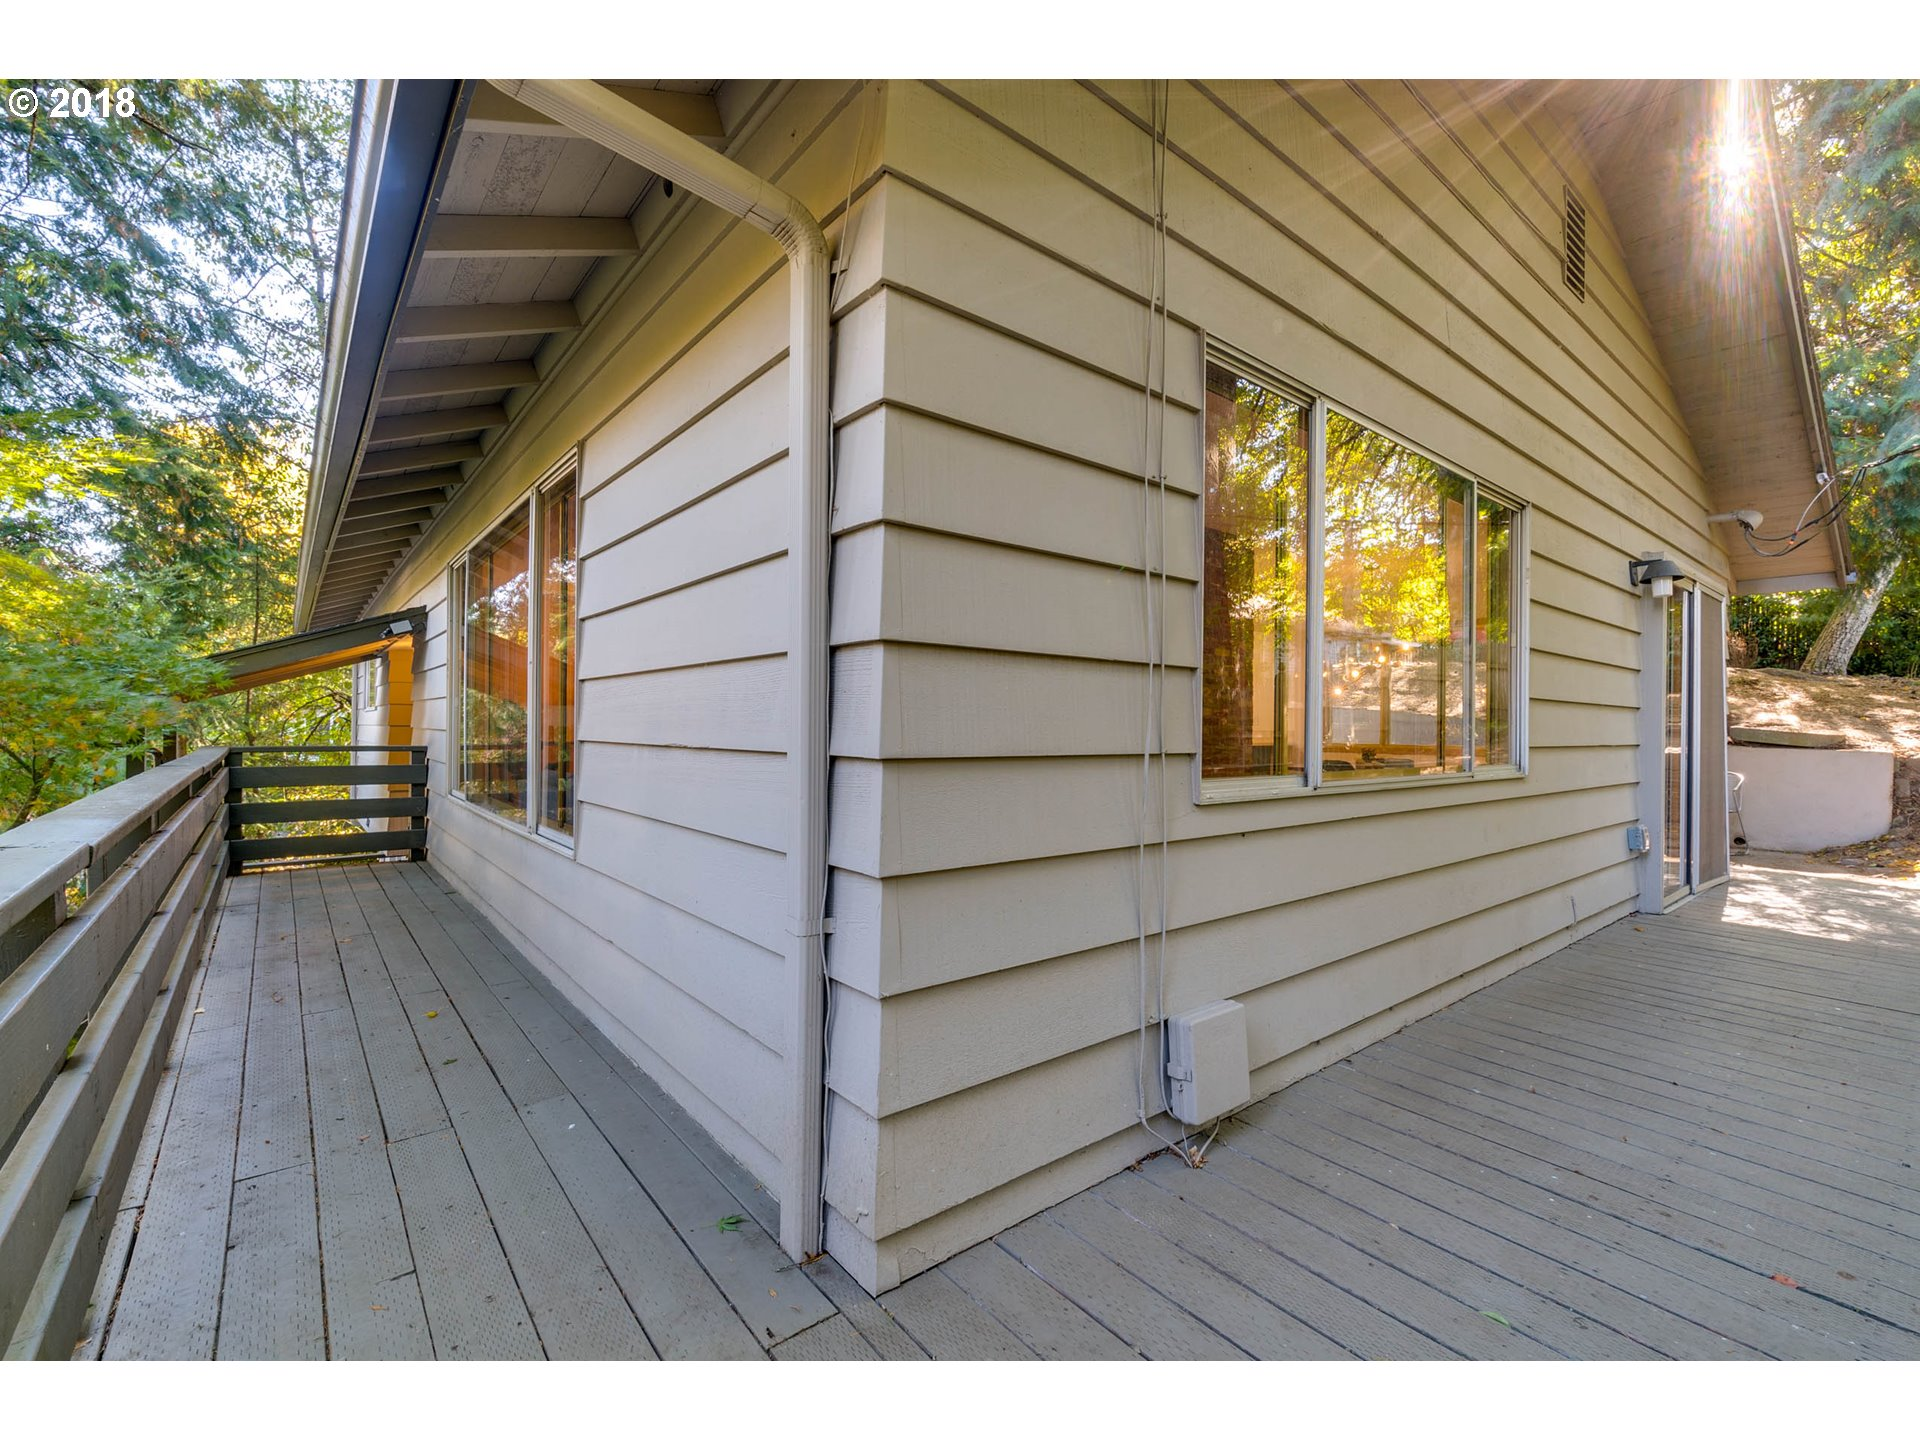 2532 SW BERTHA BLVD Portland, OR 97239 - MLS #: 18599171